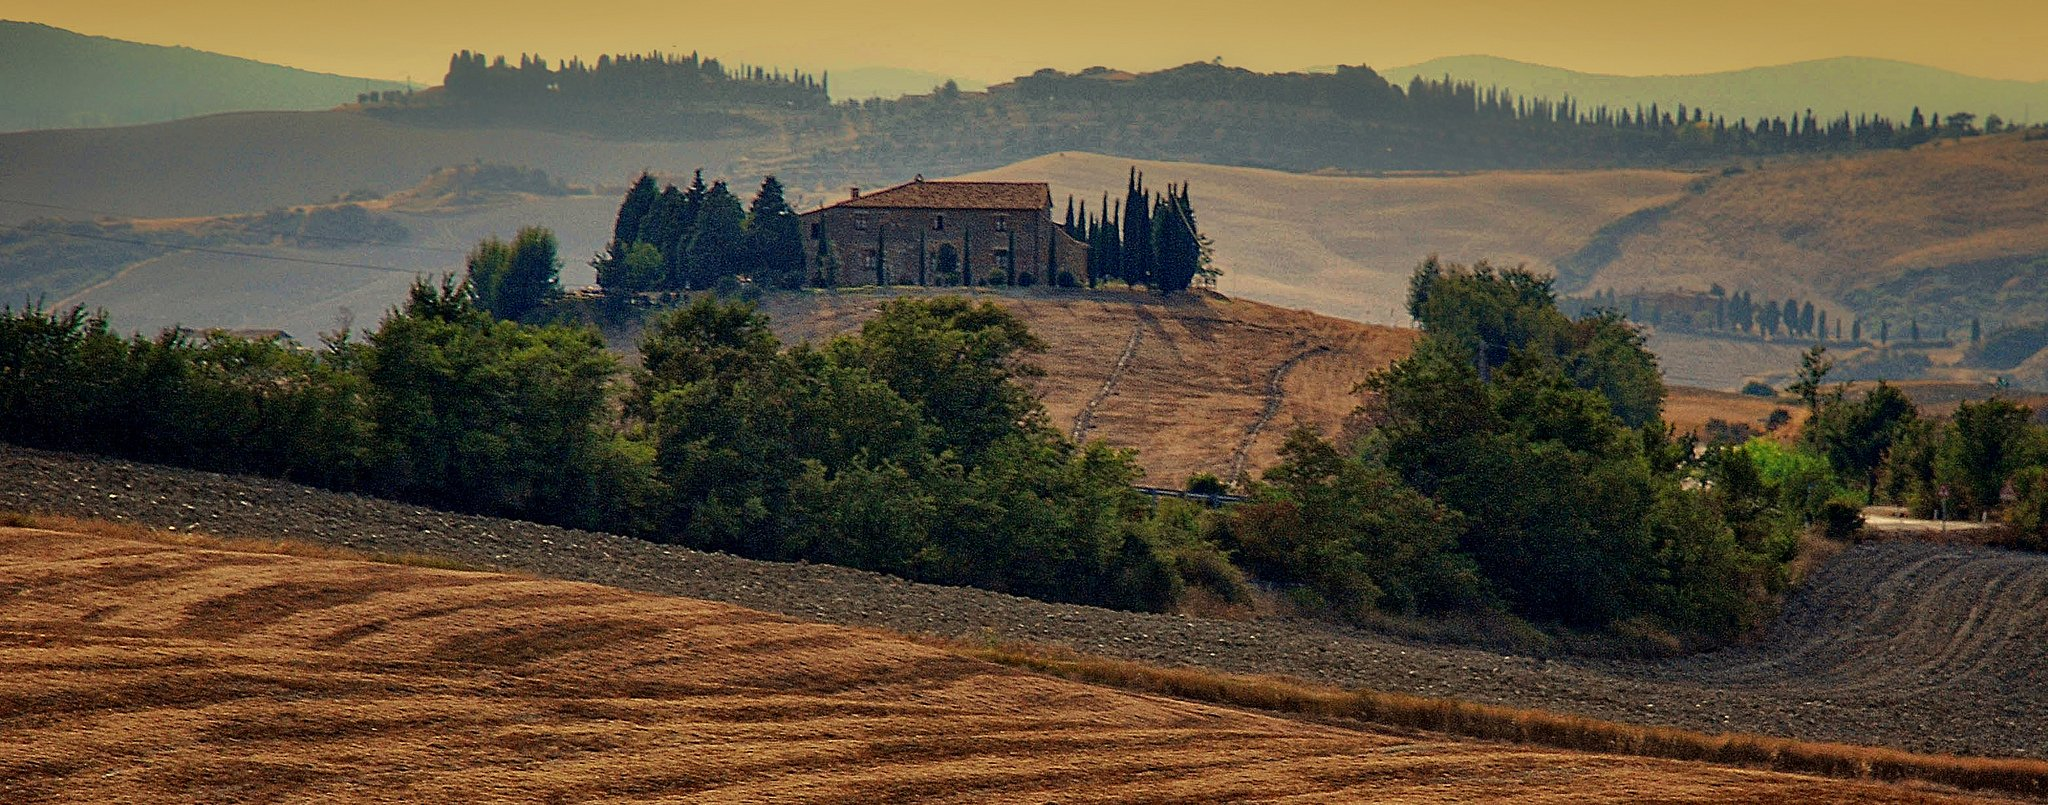 Tuscan landscape by: Eric Huybrechts